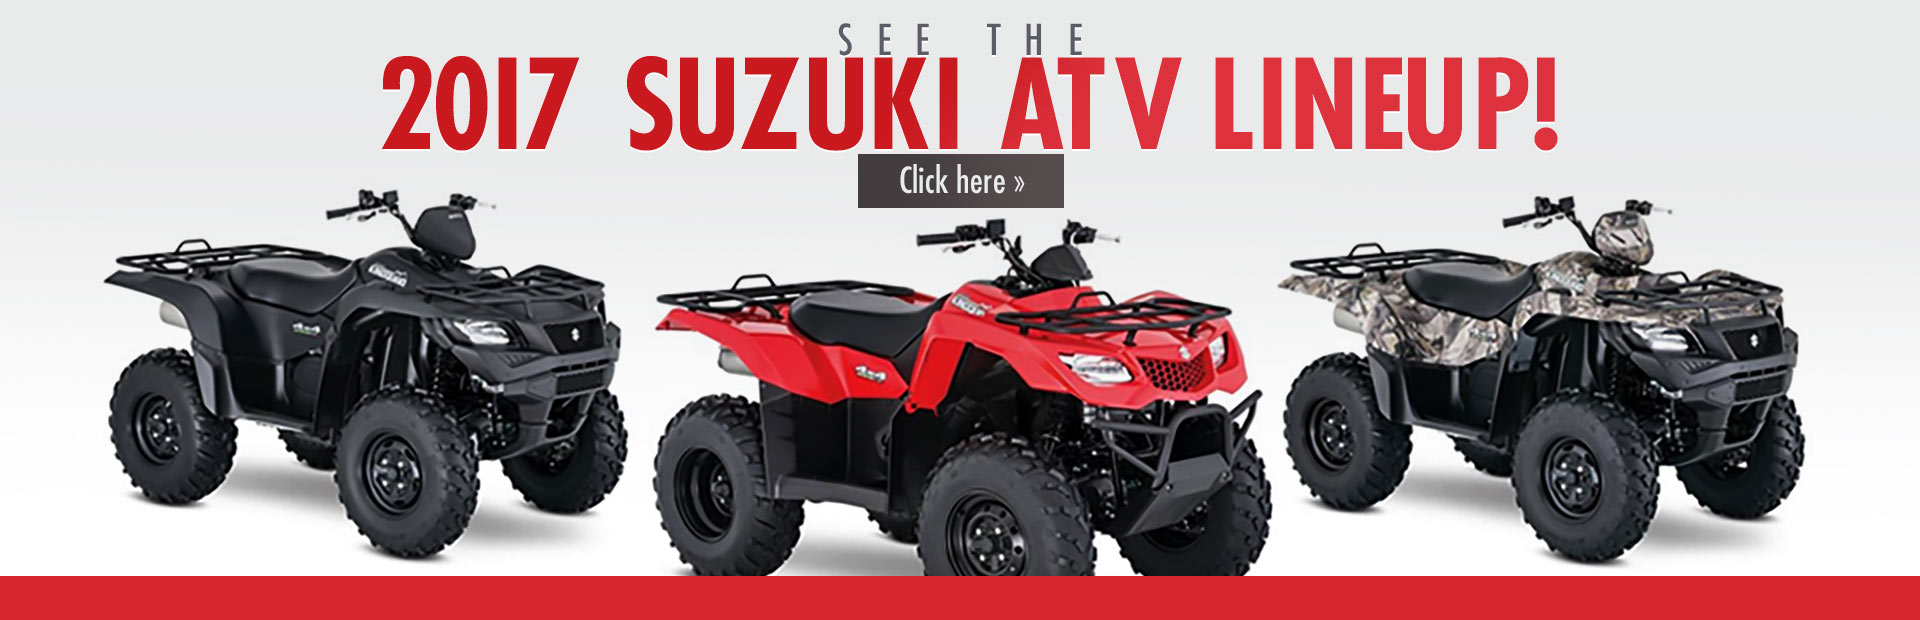 Click here to see the 2017 Suzuki ATV lineup!